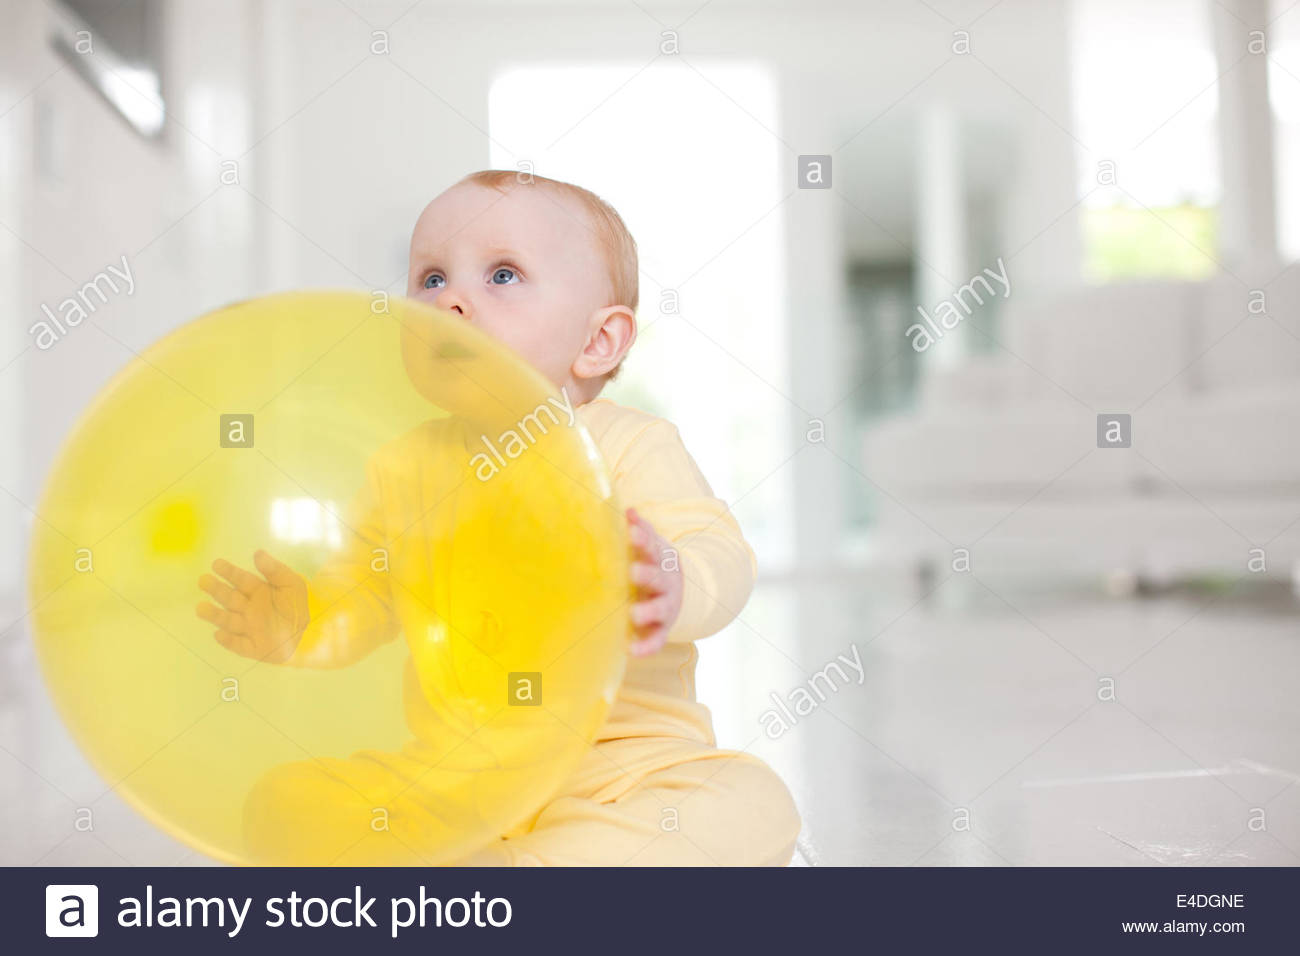 Curious baby with yellow balloon - Stock Image